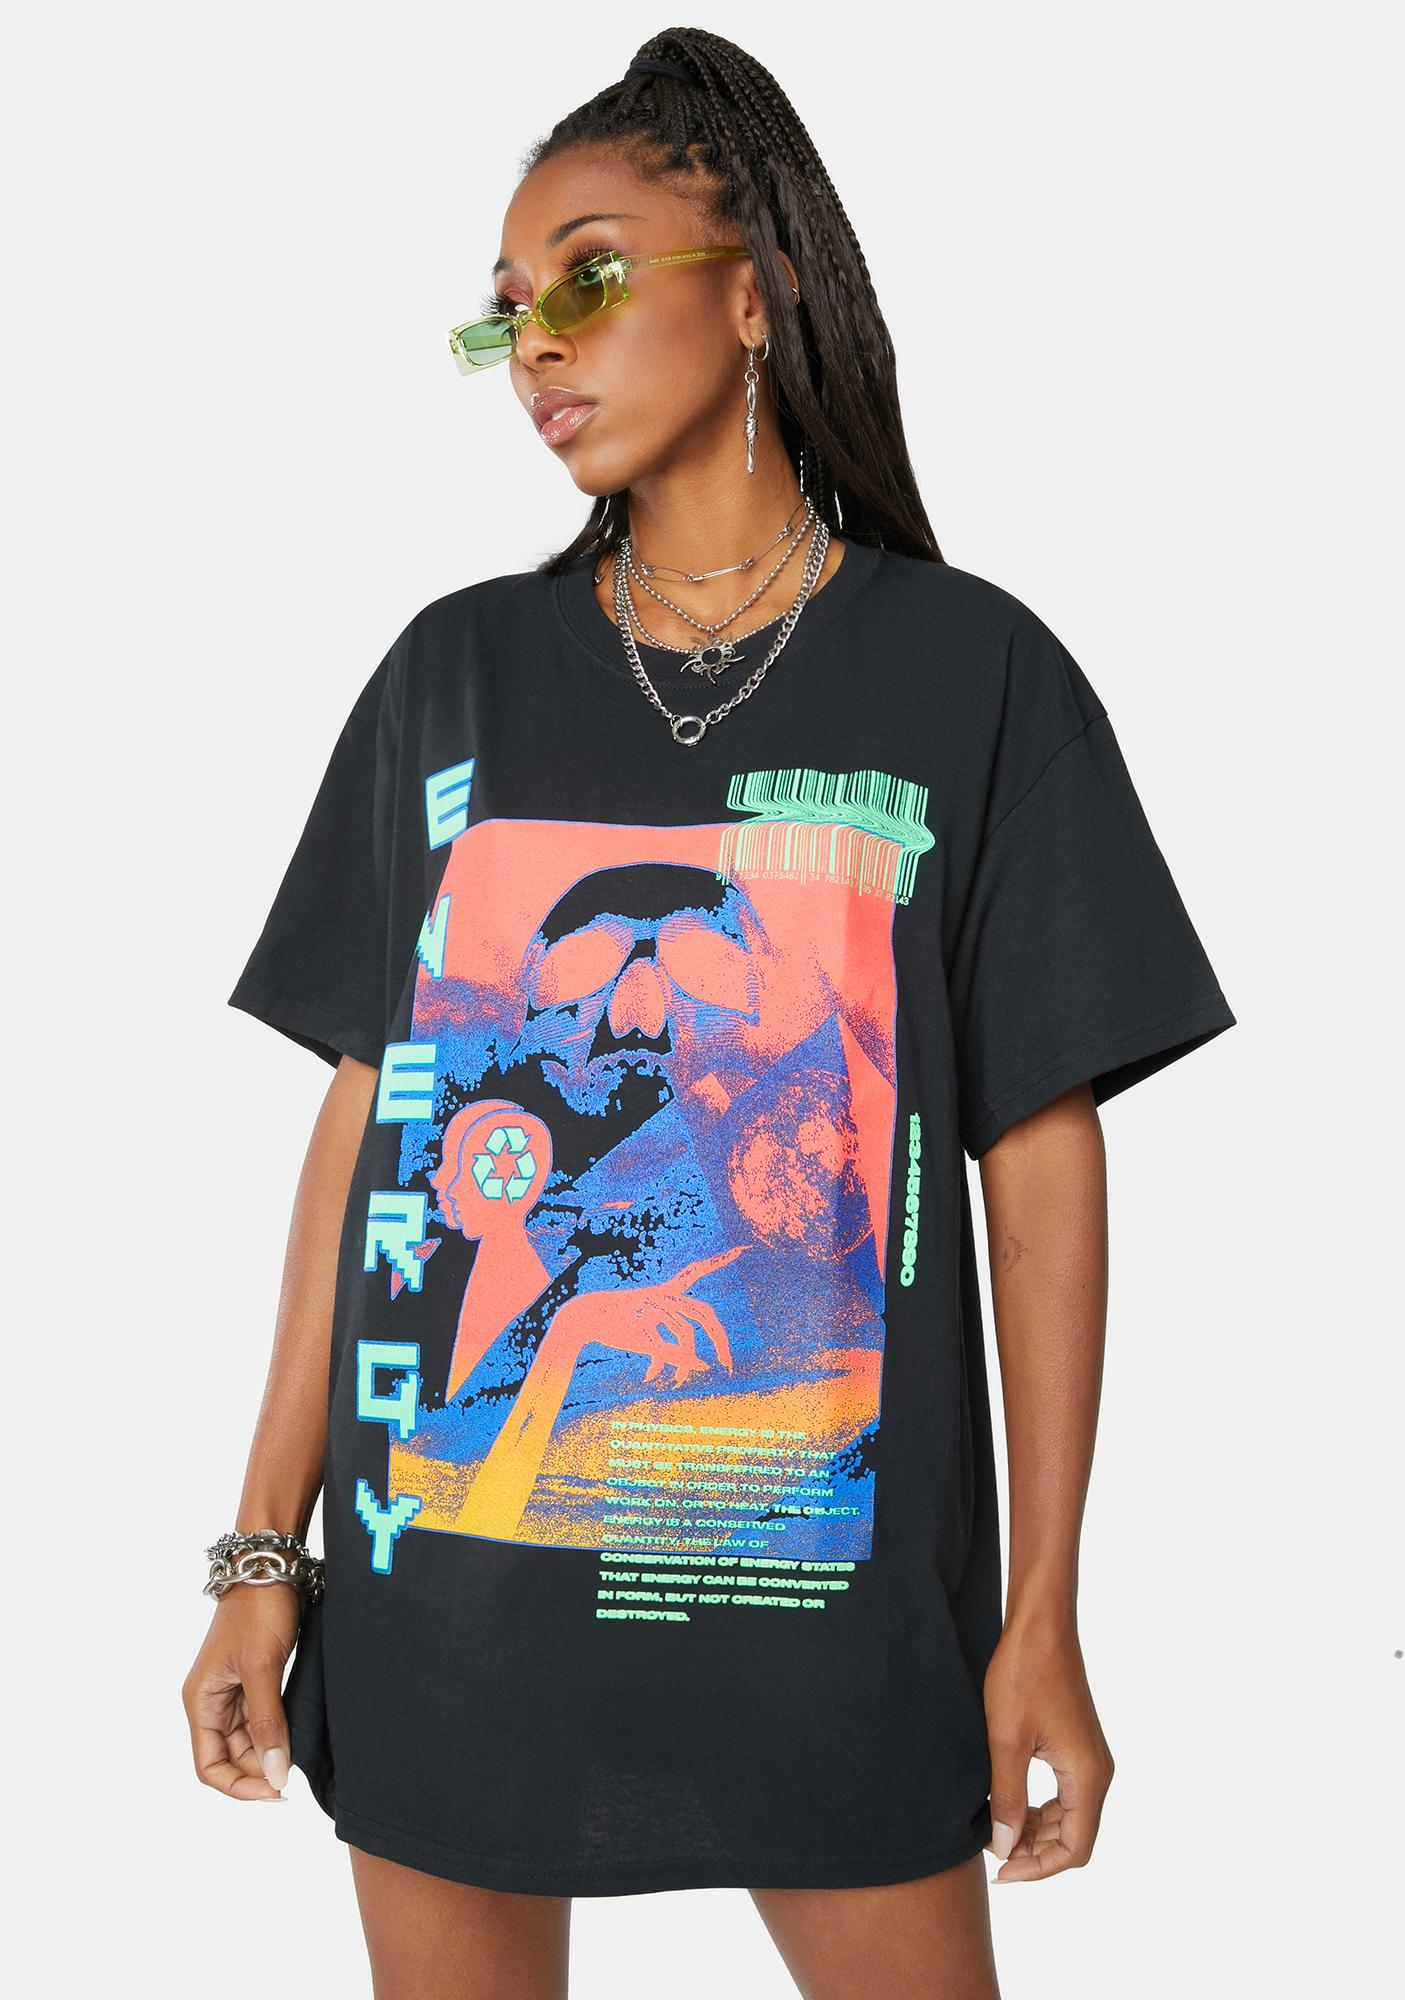 Partee Supplies Energy Graphic Tee